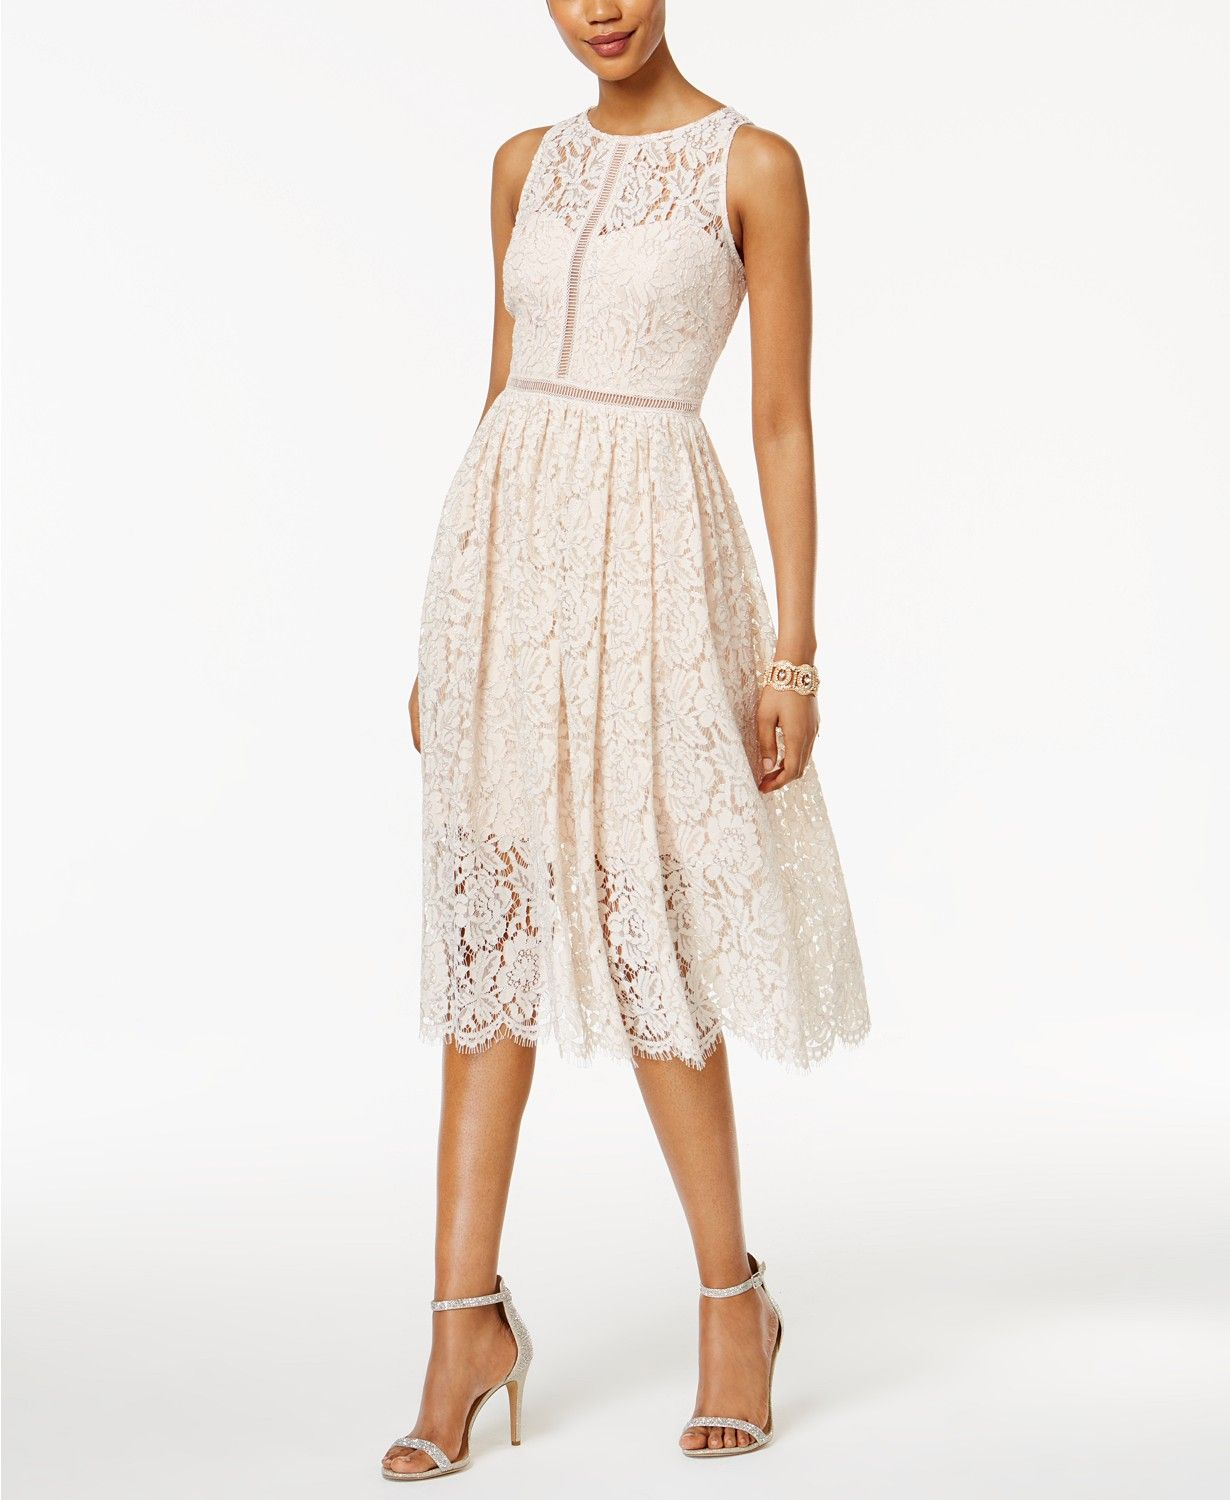 b555fb76b5 Adrianna Papell Lace Tea-Length Dress Women - Dresses - Macy's ...